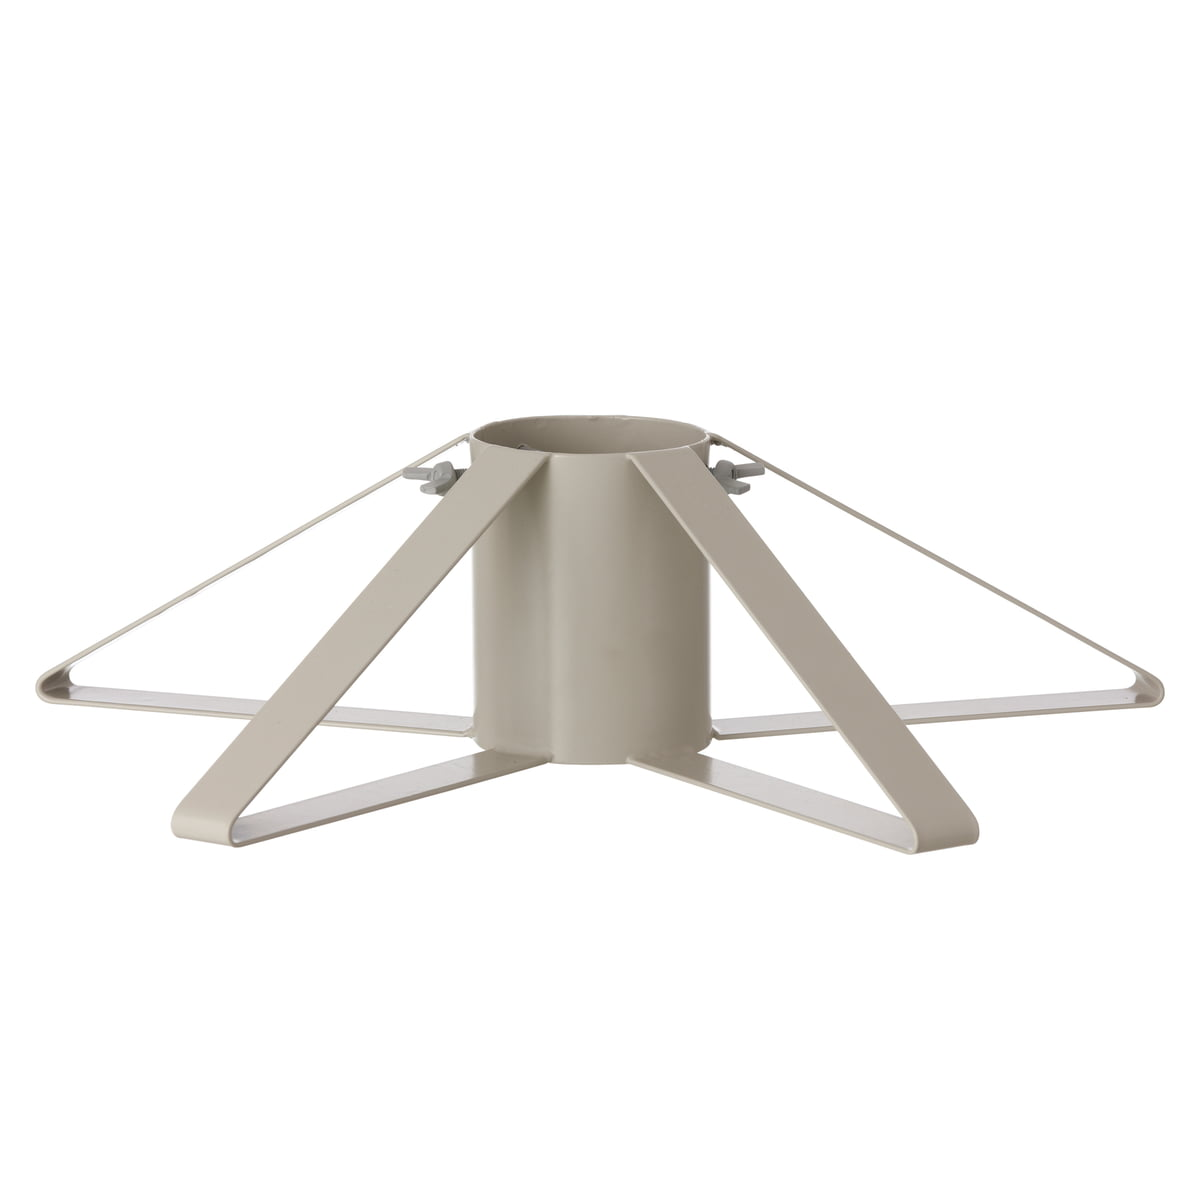 Large Christmas Tree Stand The Christmas Tree Stand By Ferm Living In Our Shop